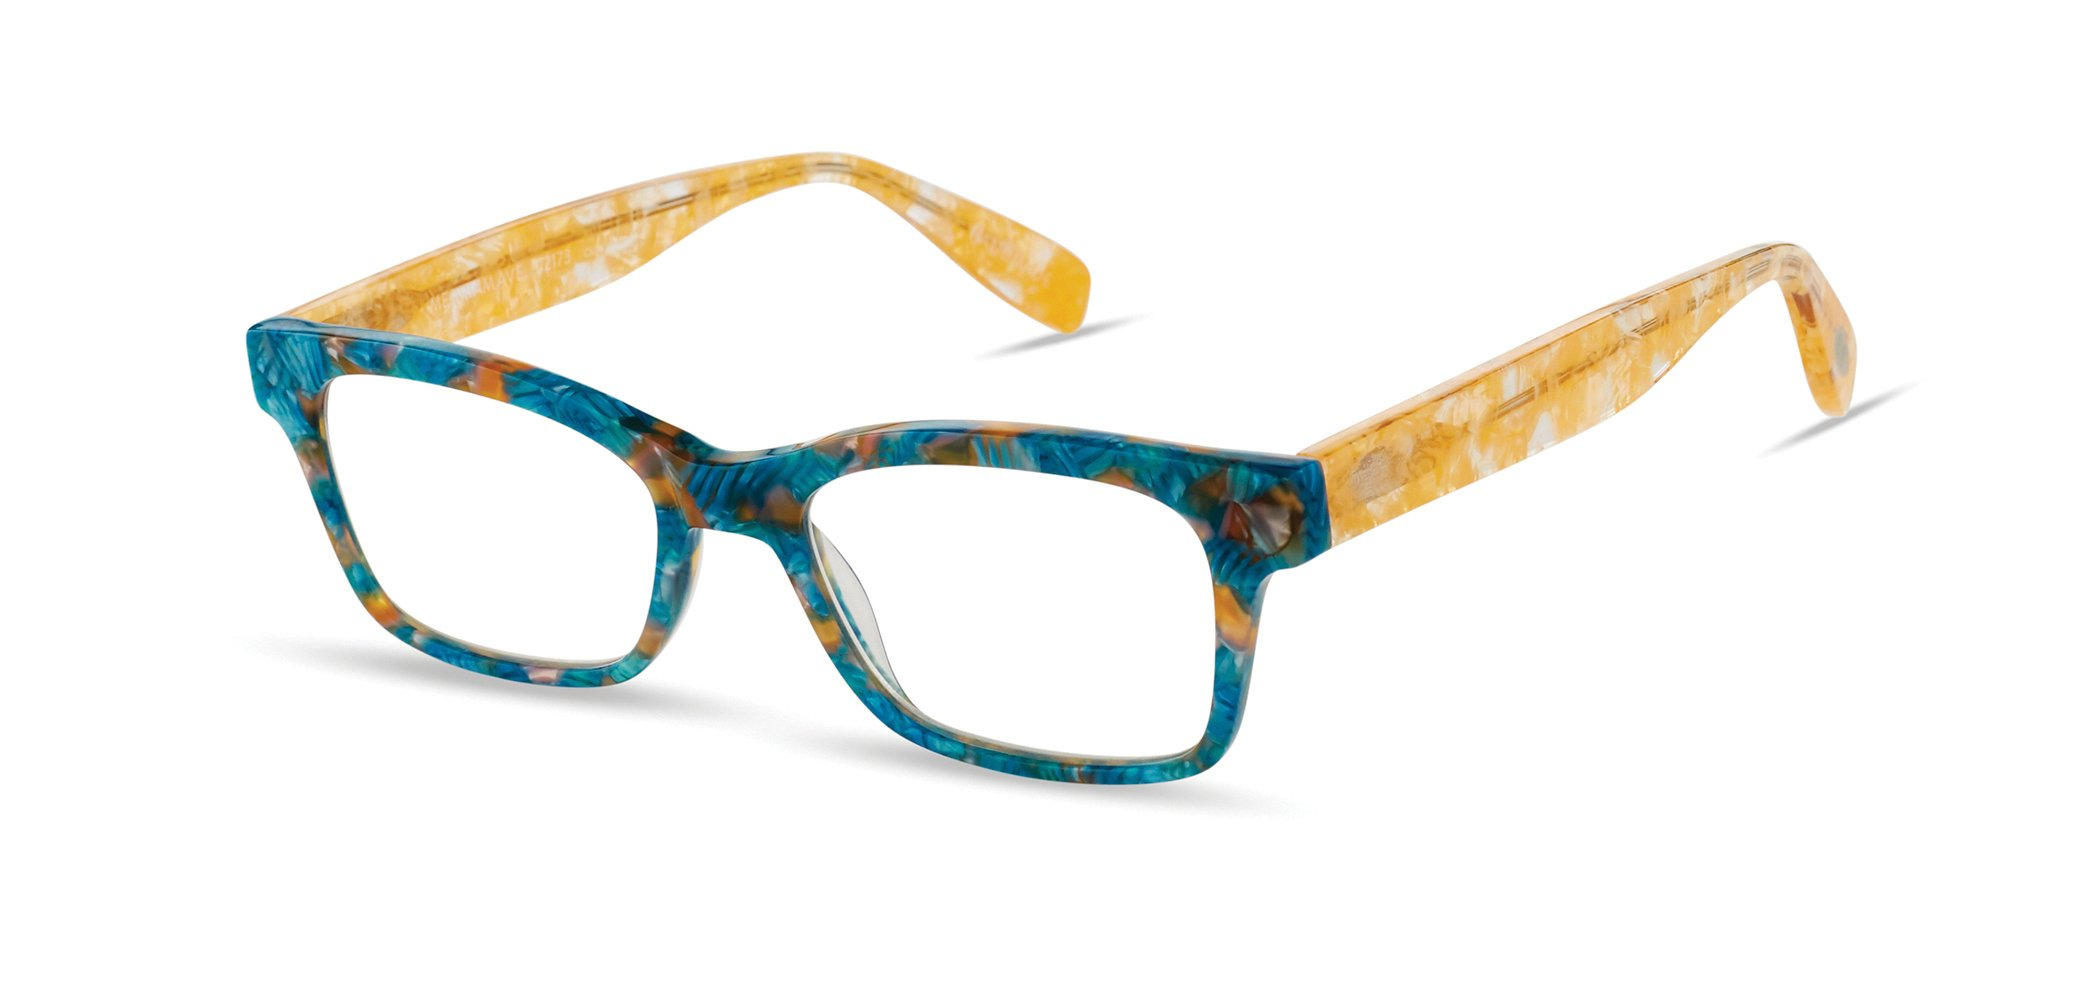 Merriam Avenue - Rectangular Trendy Fashion Reading Glasses for Men and Women - Honolulu Blue Pearl (+2.00 Magnification Power)